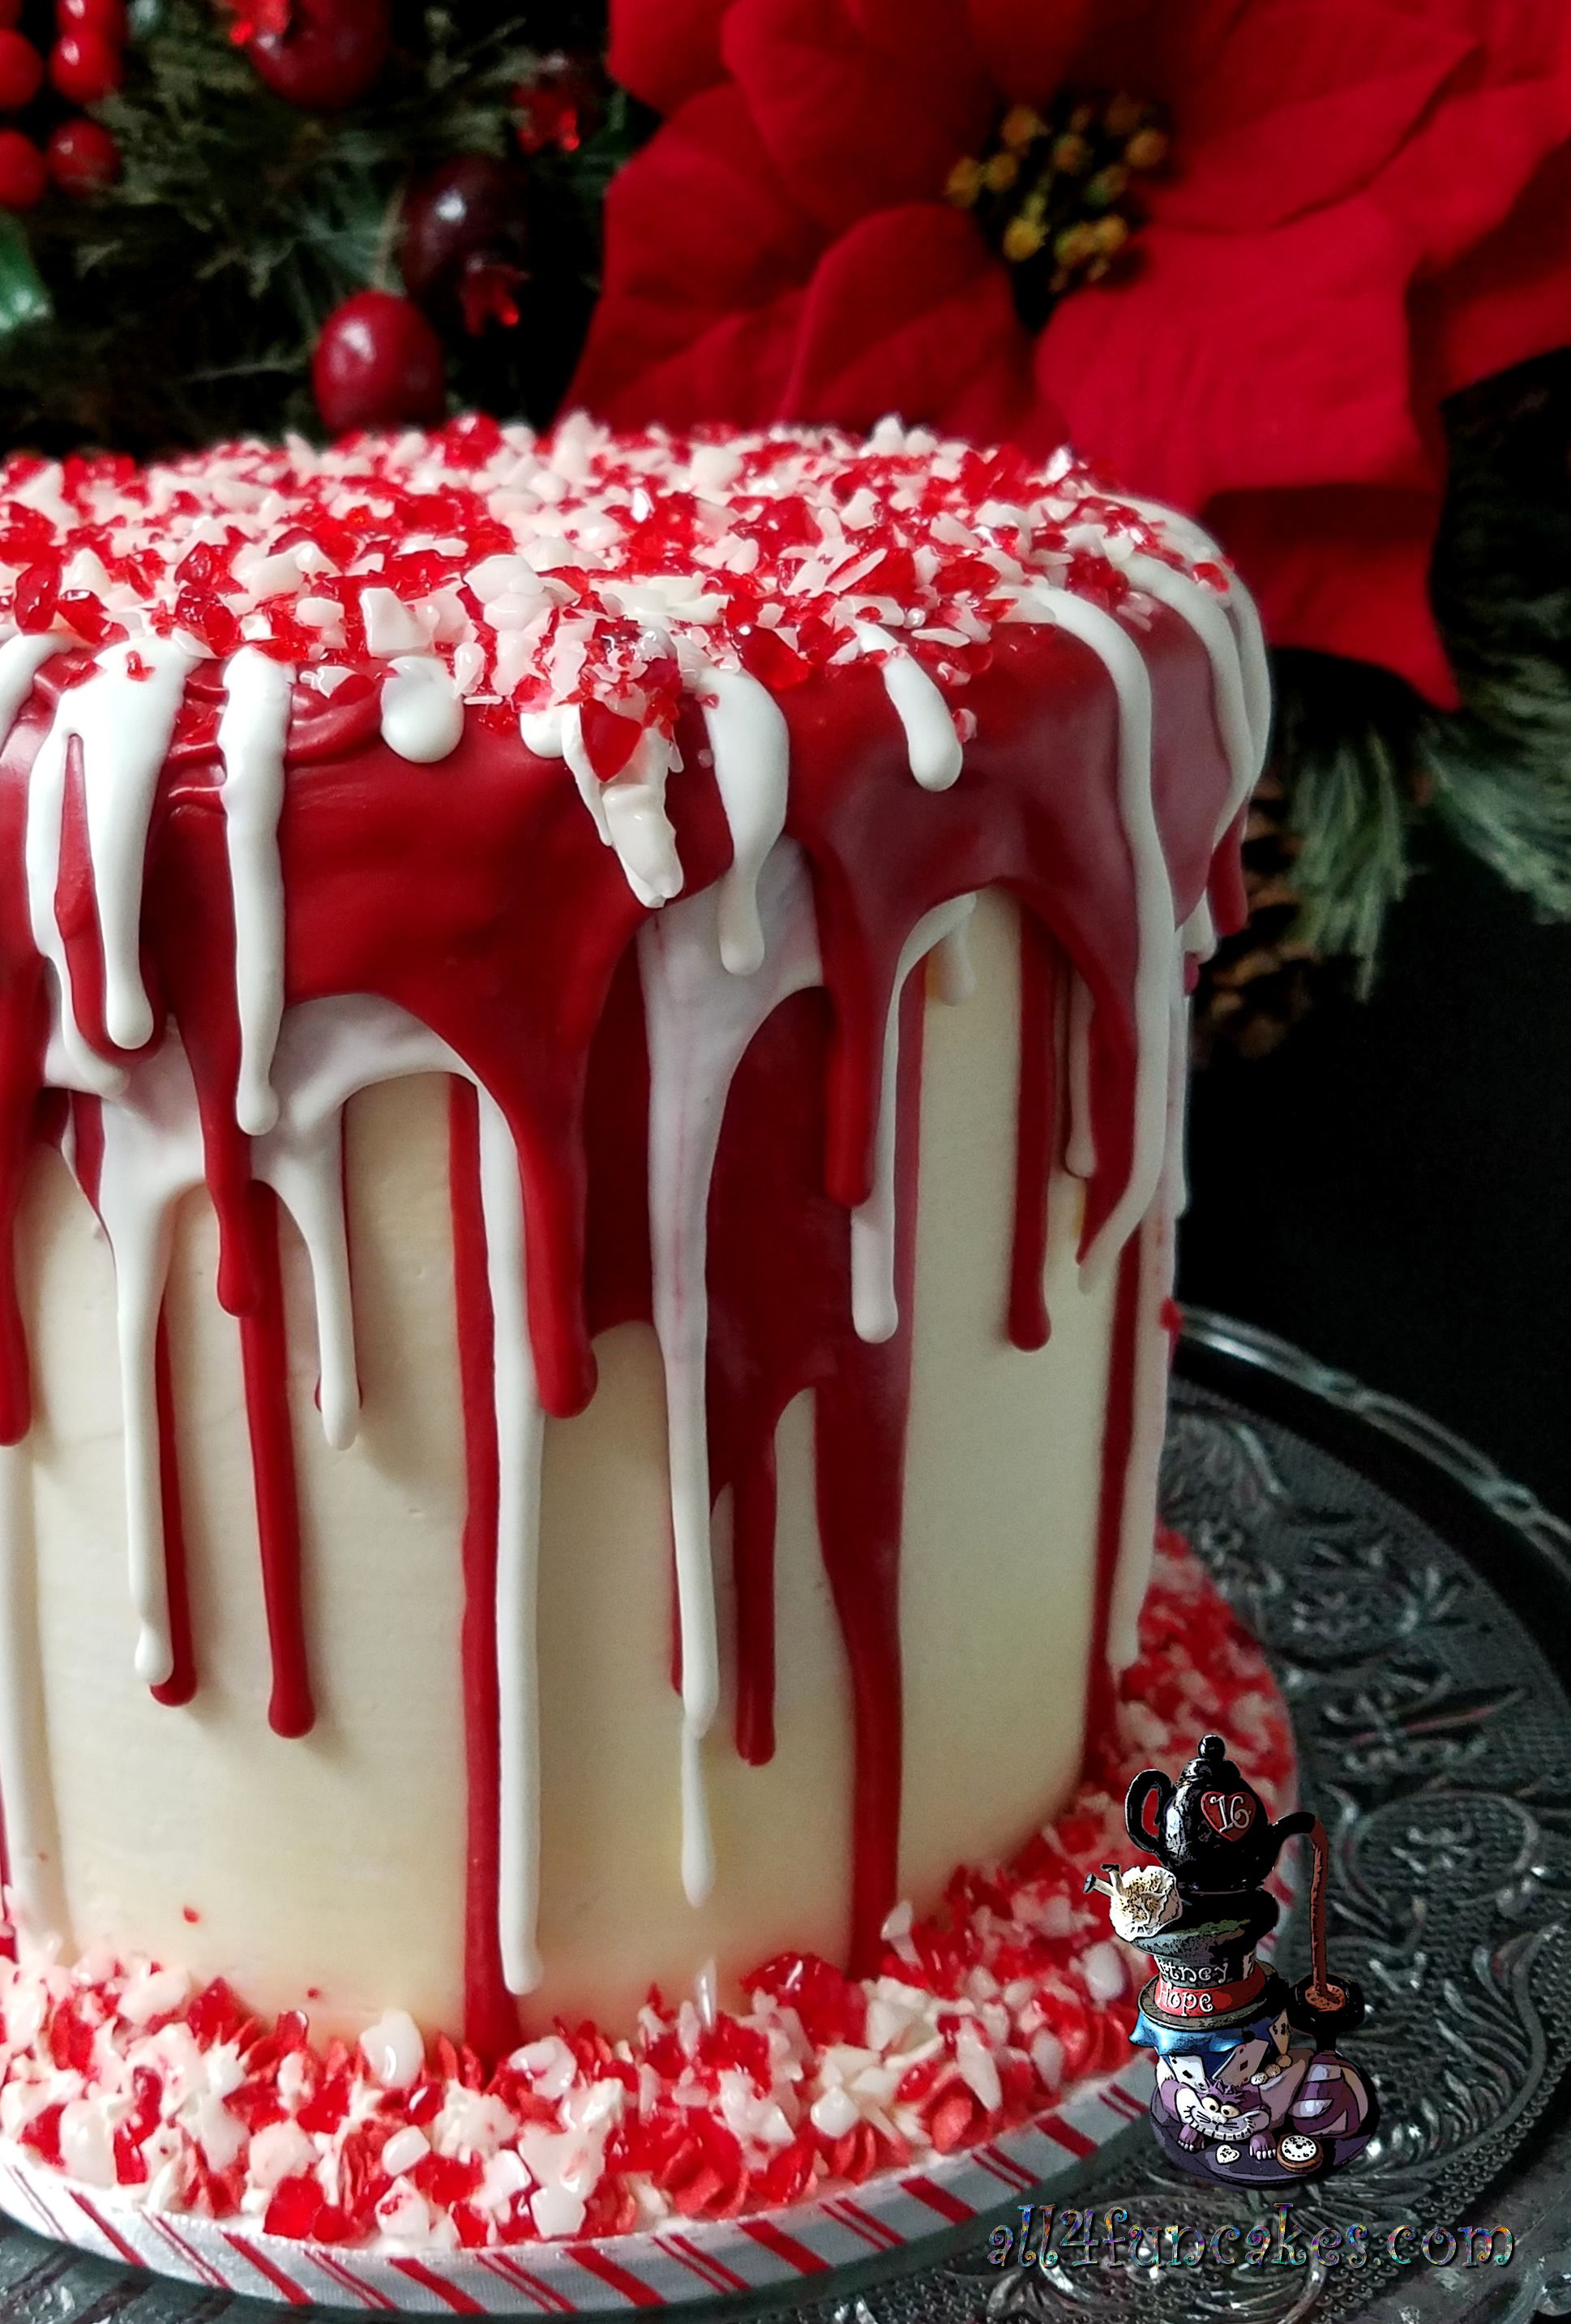 Birthday Holiday Party Chocolate Raspberry Peppermint Christmas Dessert Cake by All4Fun Cakes 2017